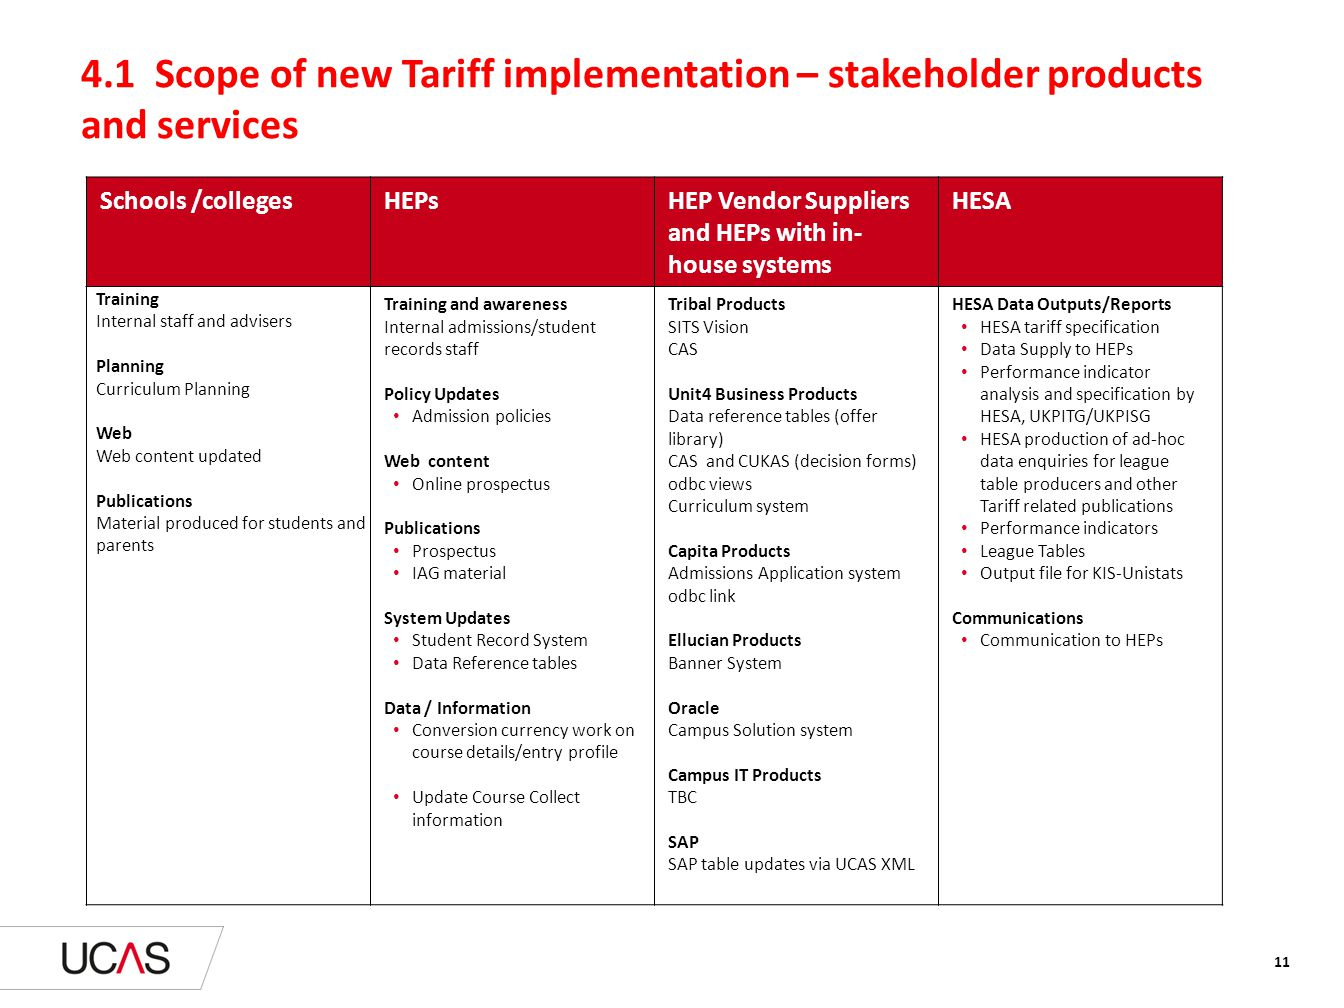 4.1 Scope of new Tariff implementation – stakeholder products and services